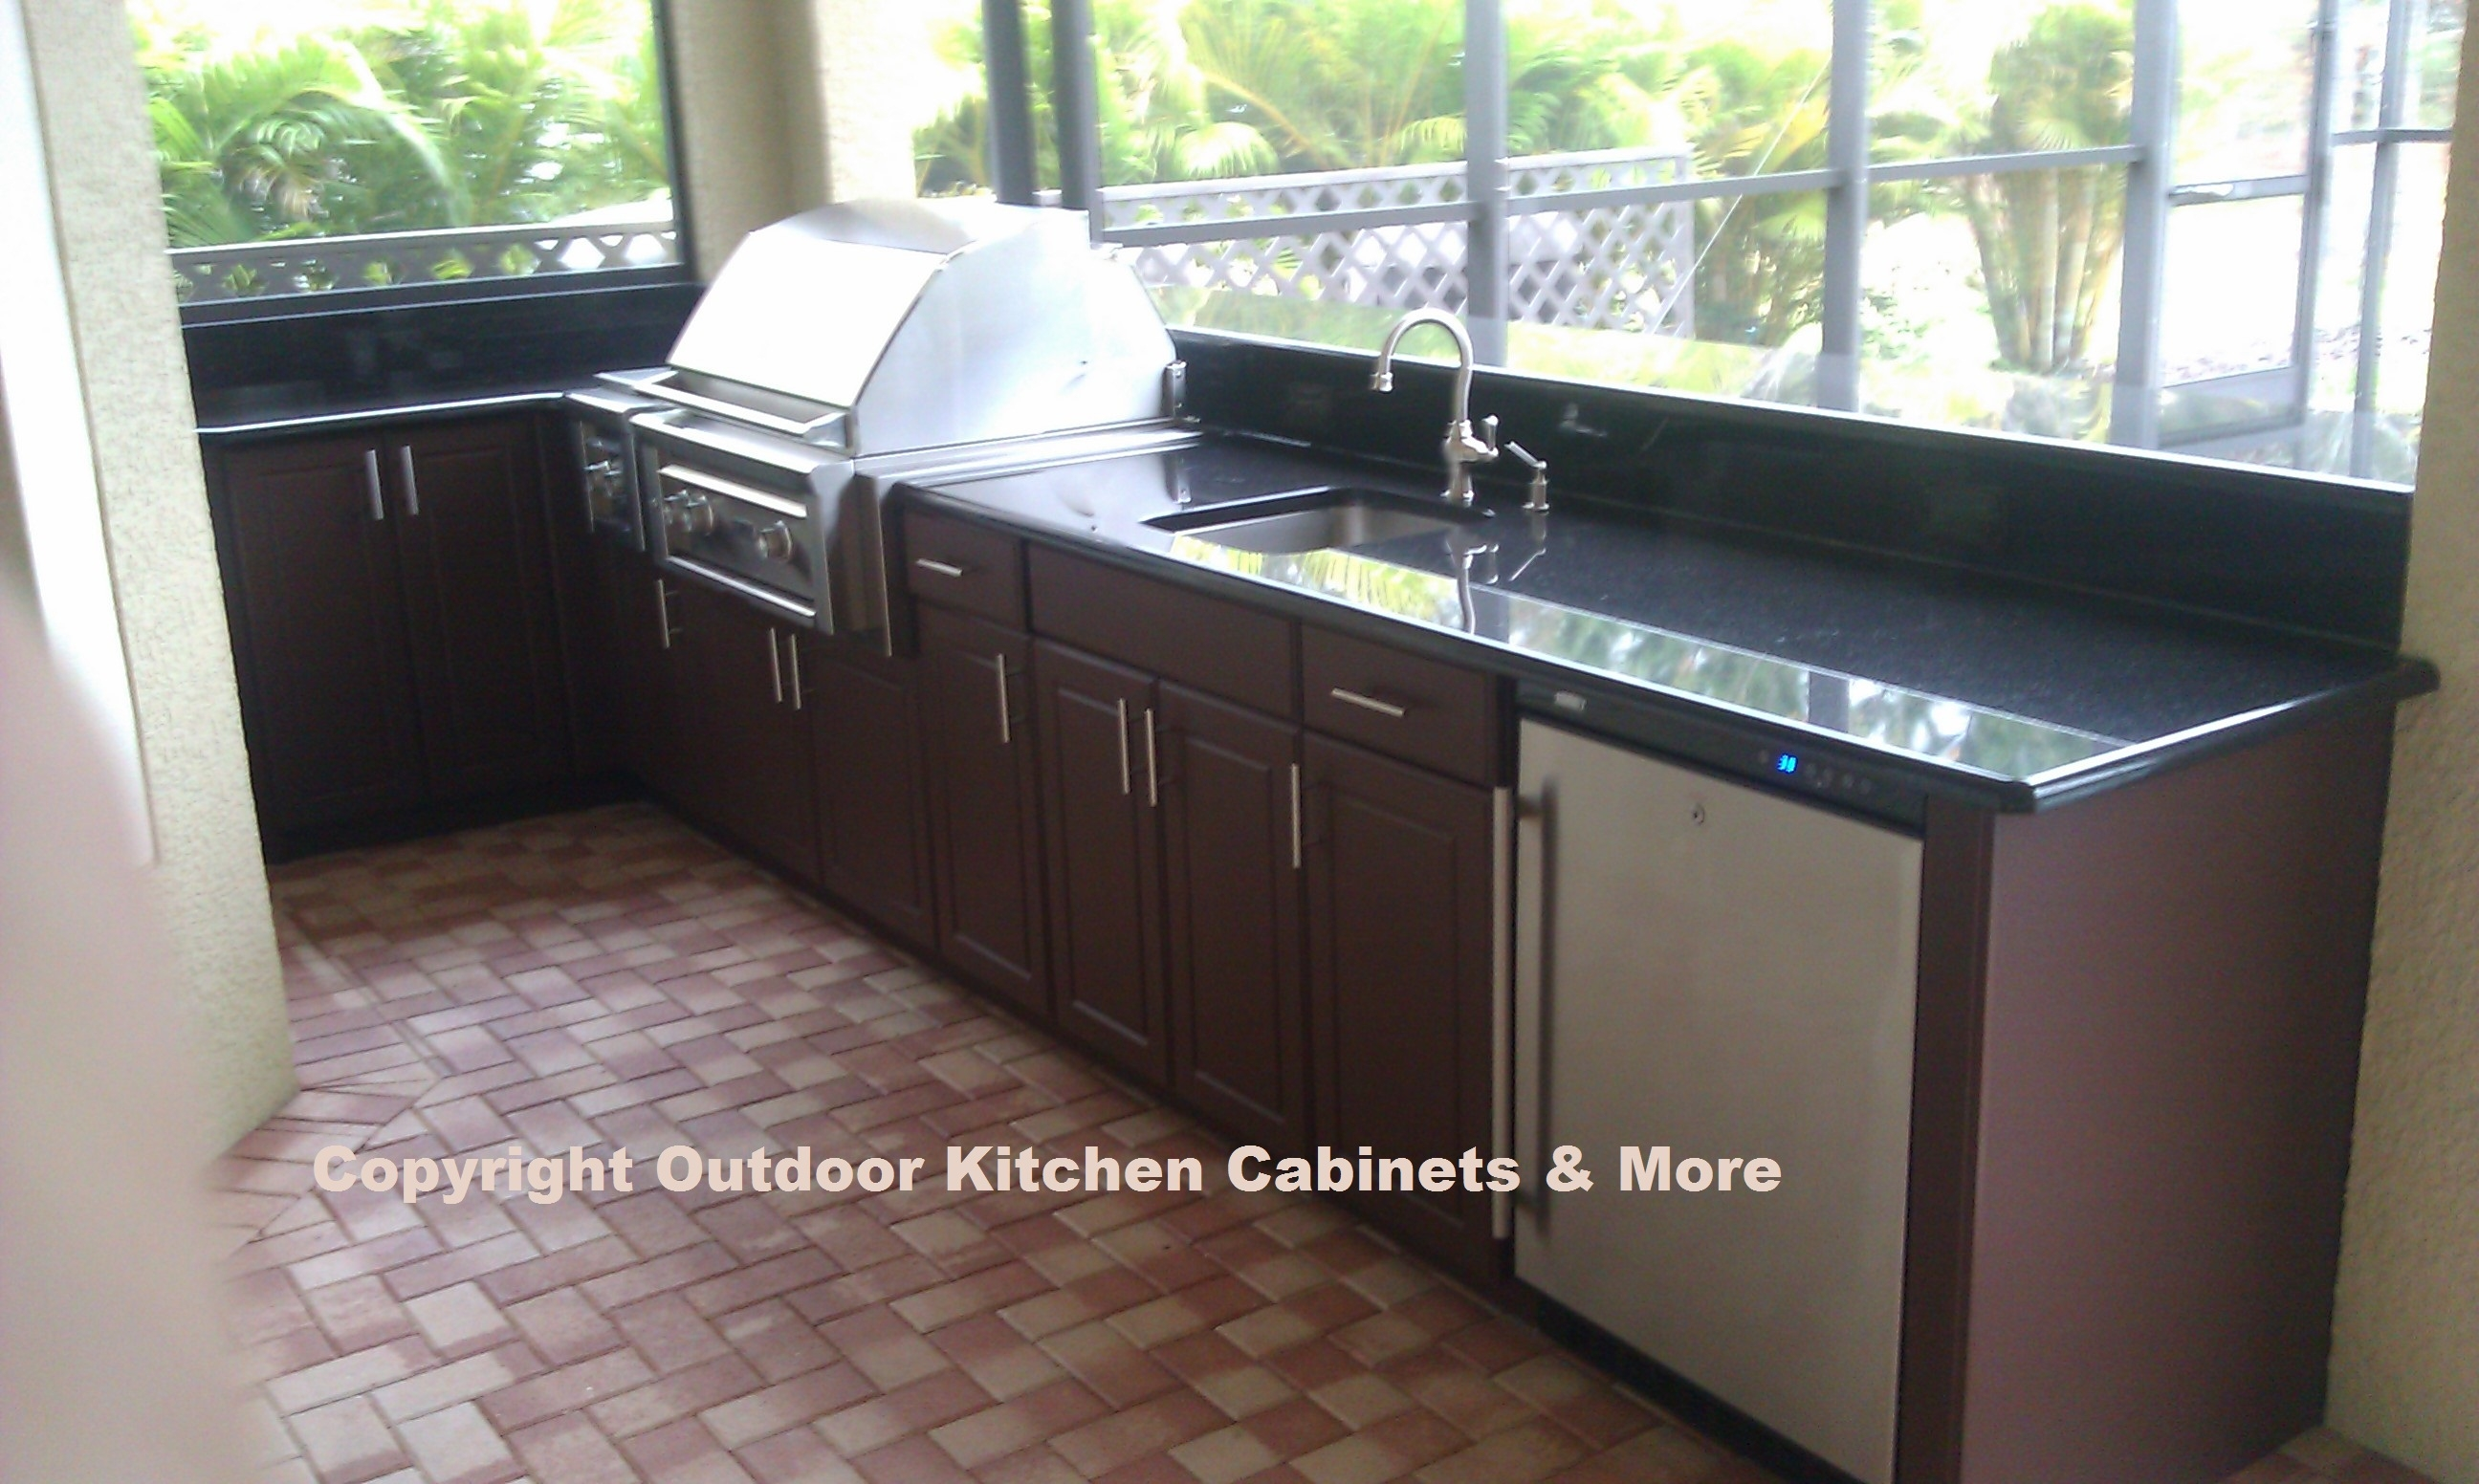 Polymer Cabinets For Outdoor Kitchens